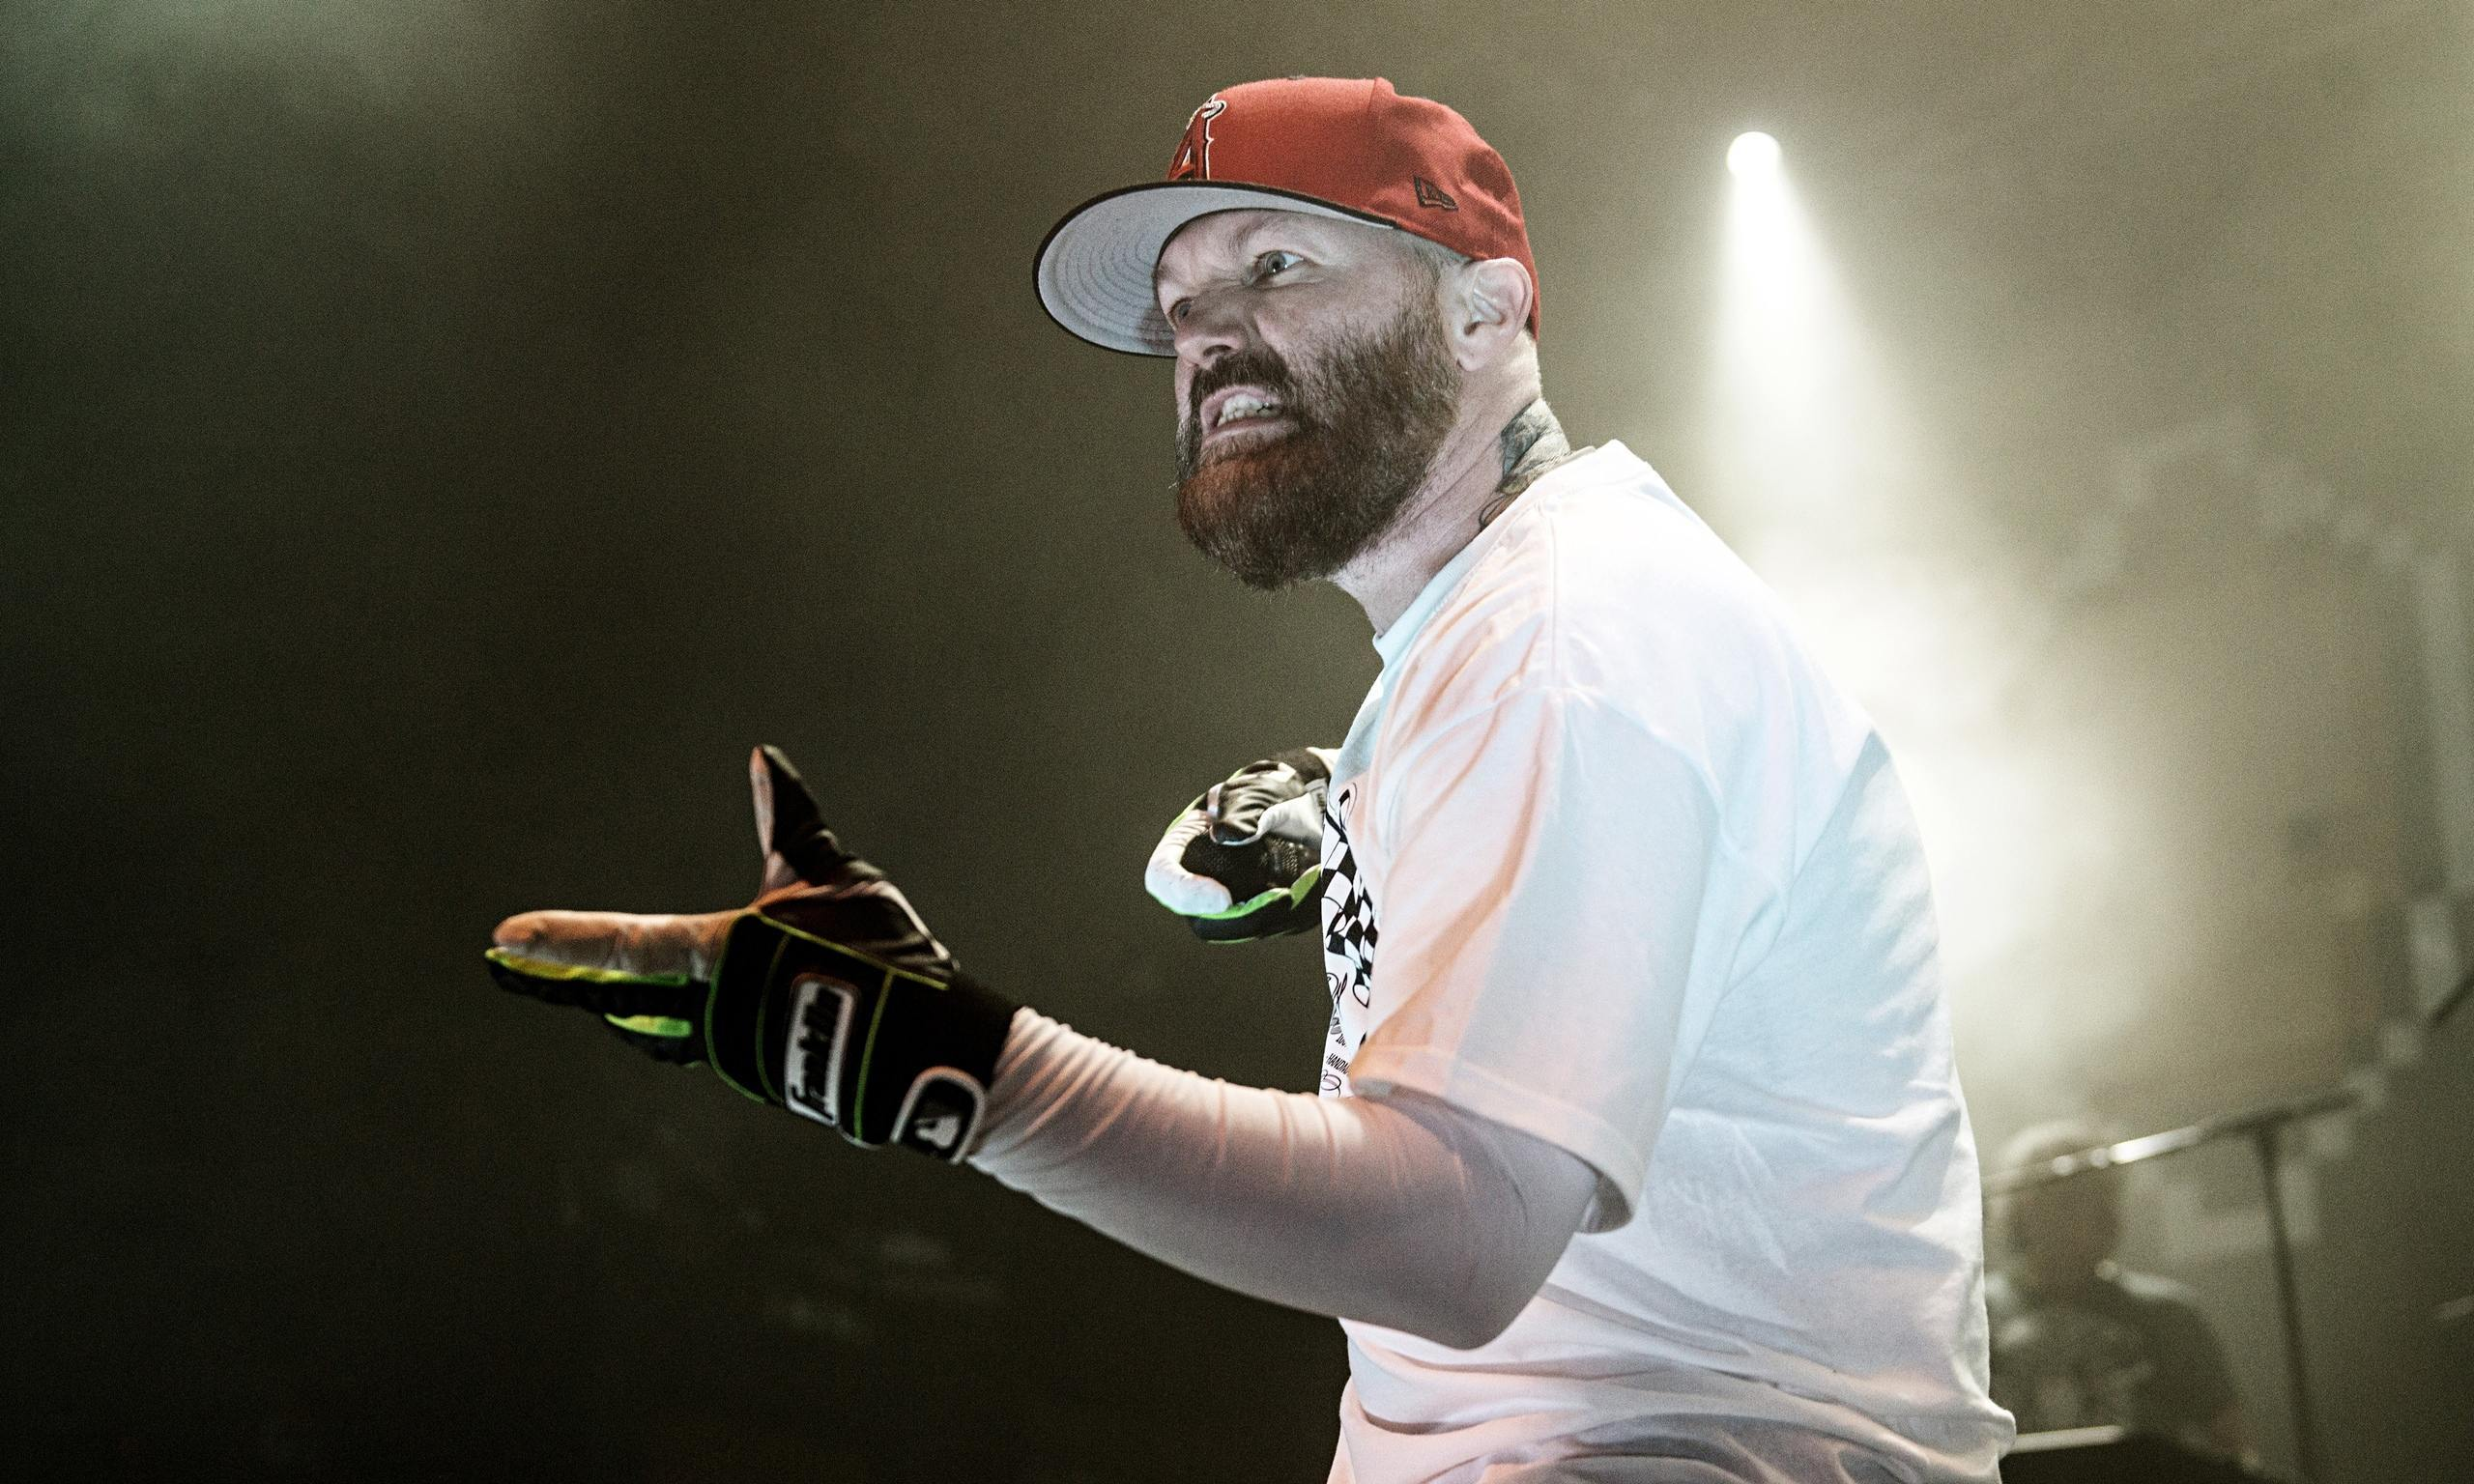 fred durst rap core music fred durst fred durst cap wallpapers 2560x1536